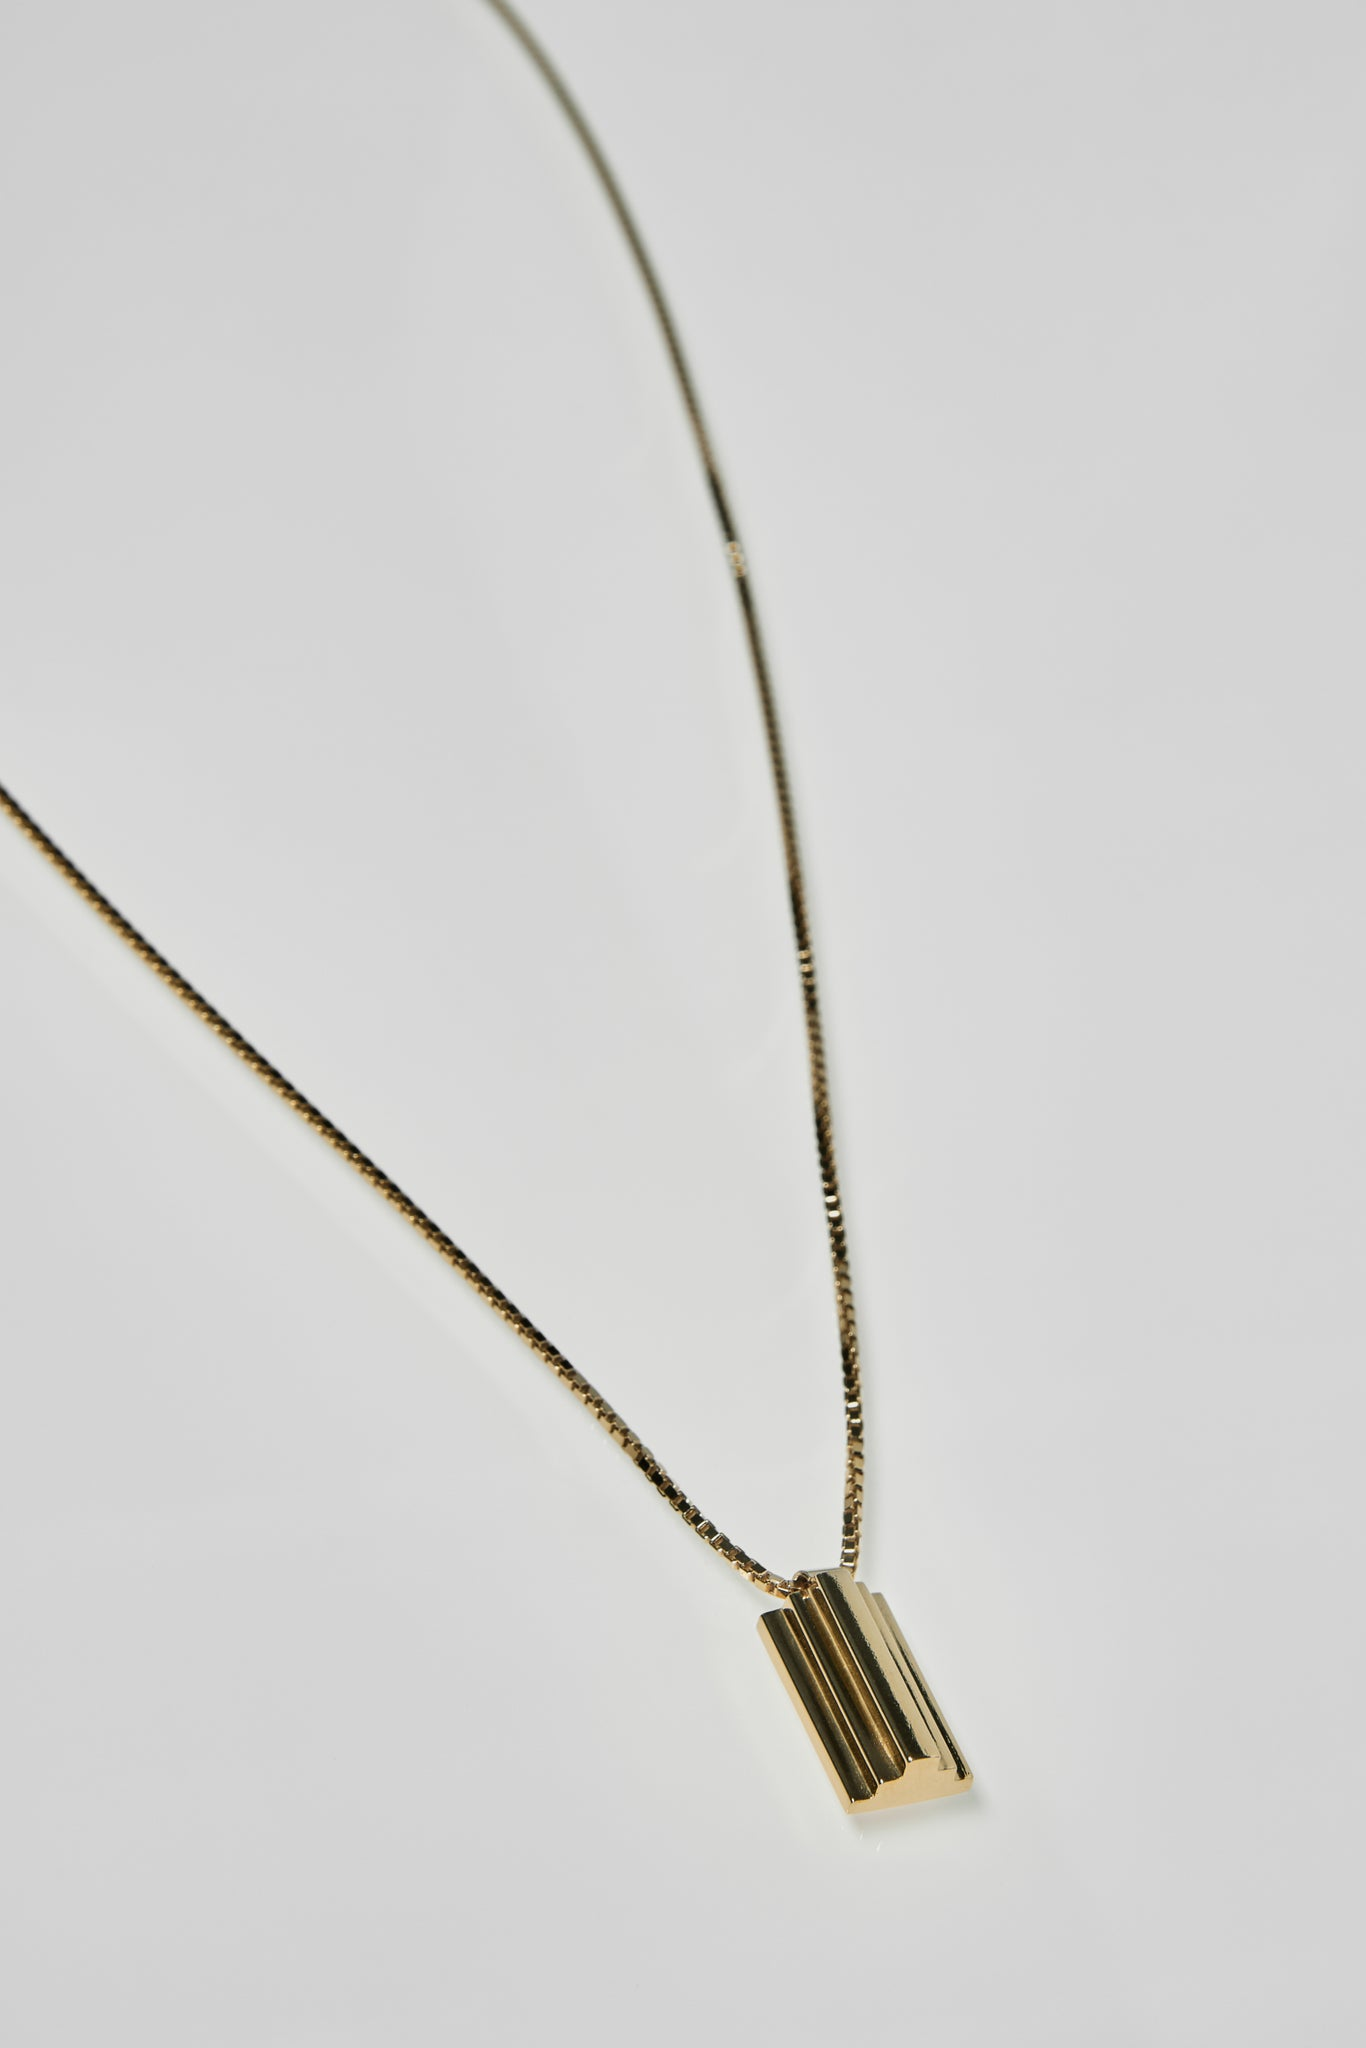 Corbusier Chain Gold - Arte Antwerp